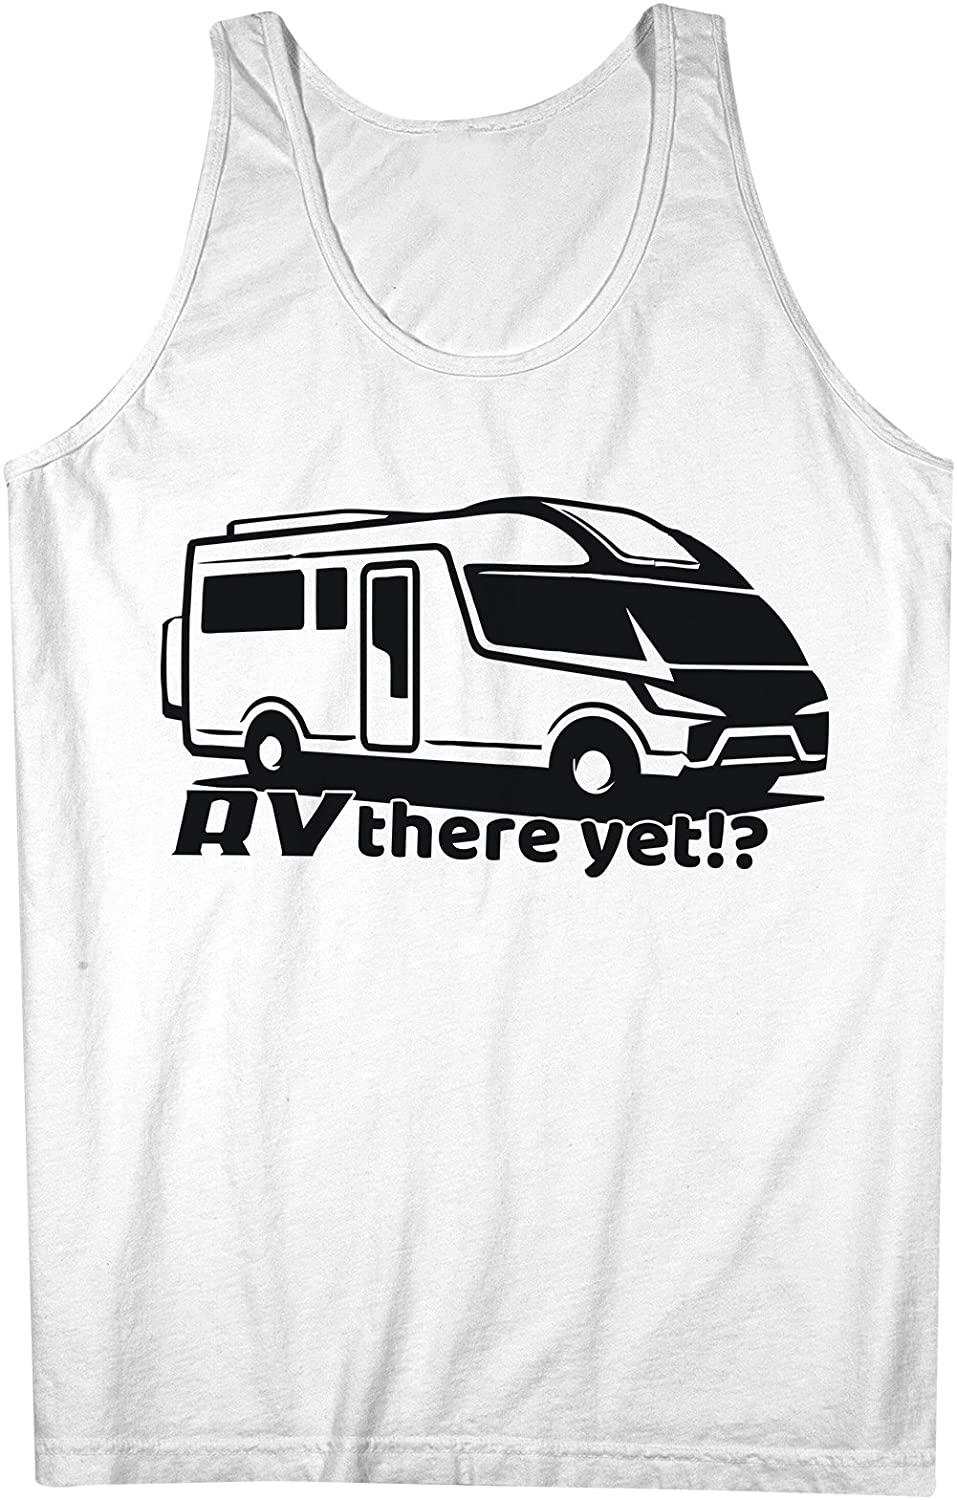 RV There Yet Recreational Vehicle Funny Traveling Mens Tank Top Sleeveless Shirt